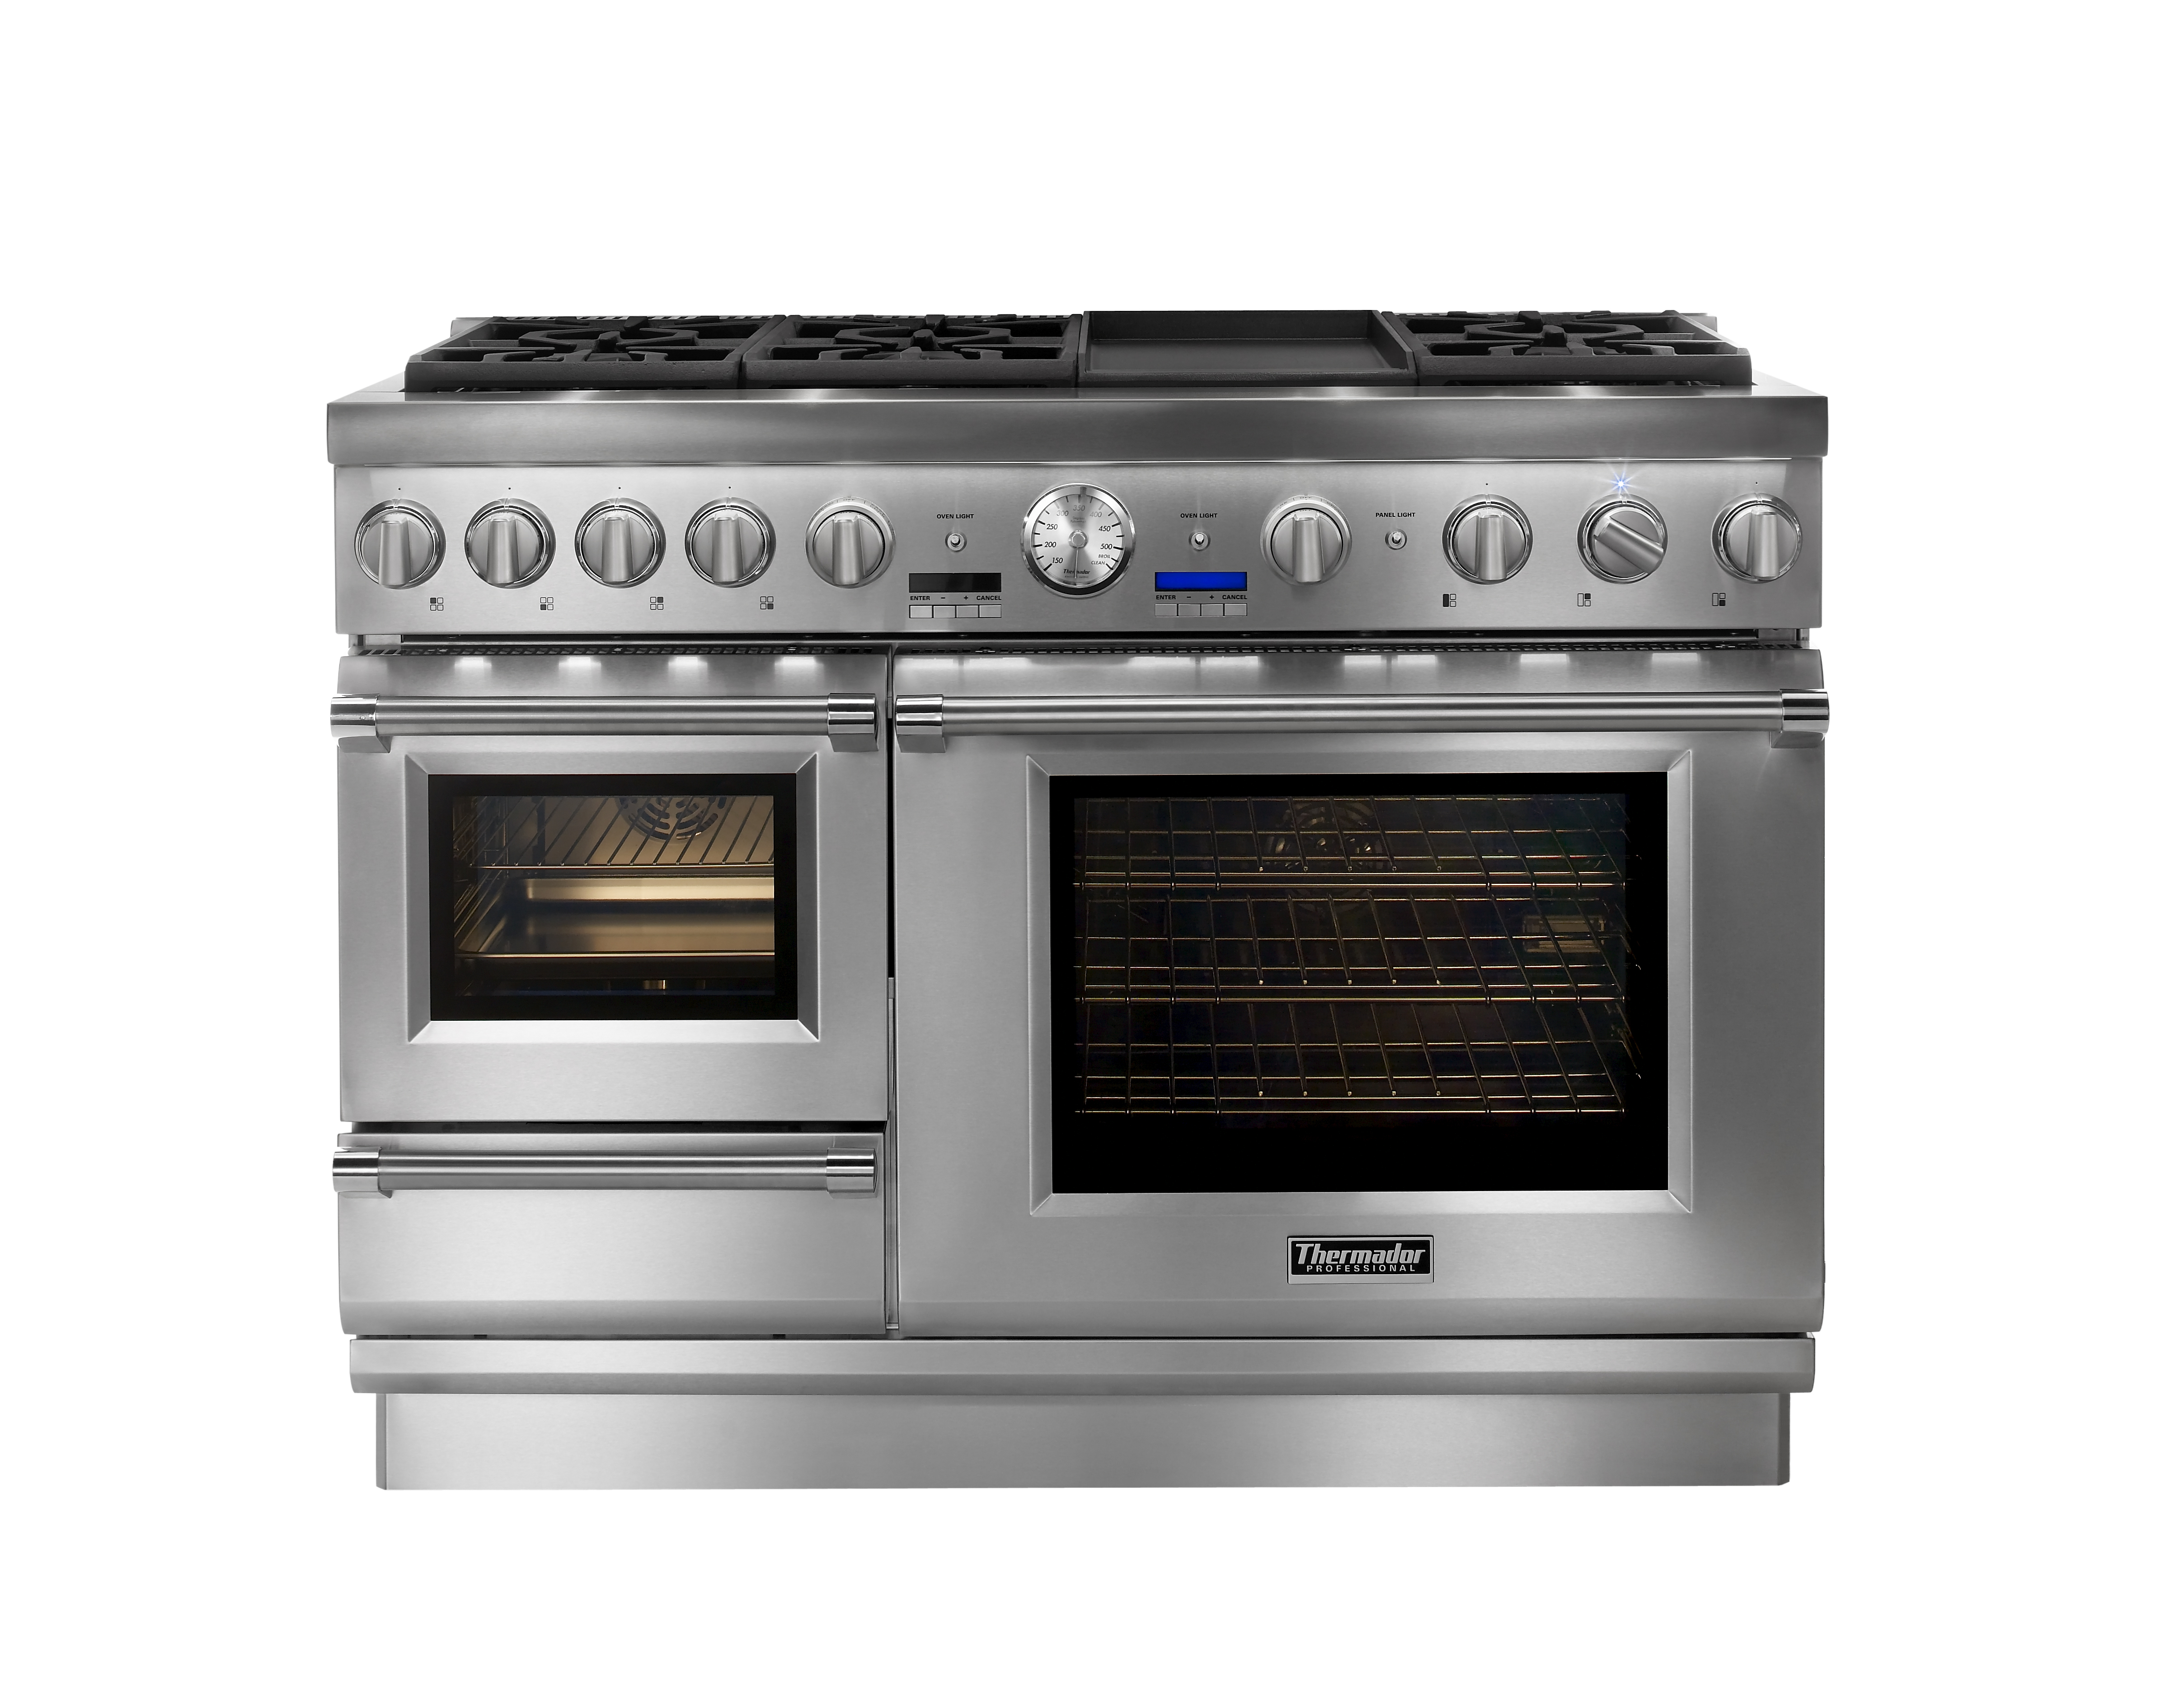 Thermador S Pro Grand Steam Range Offers Seven Cooking